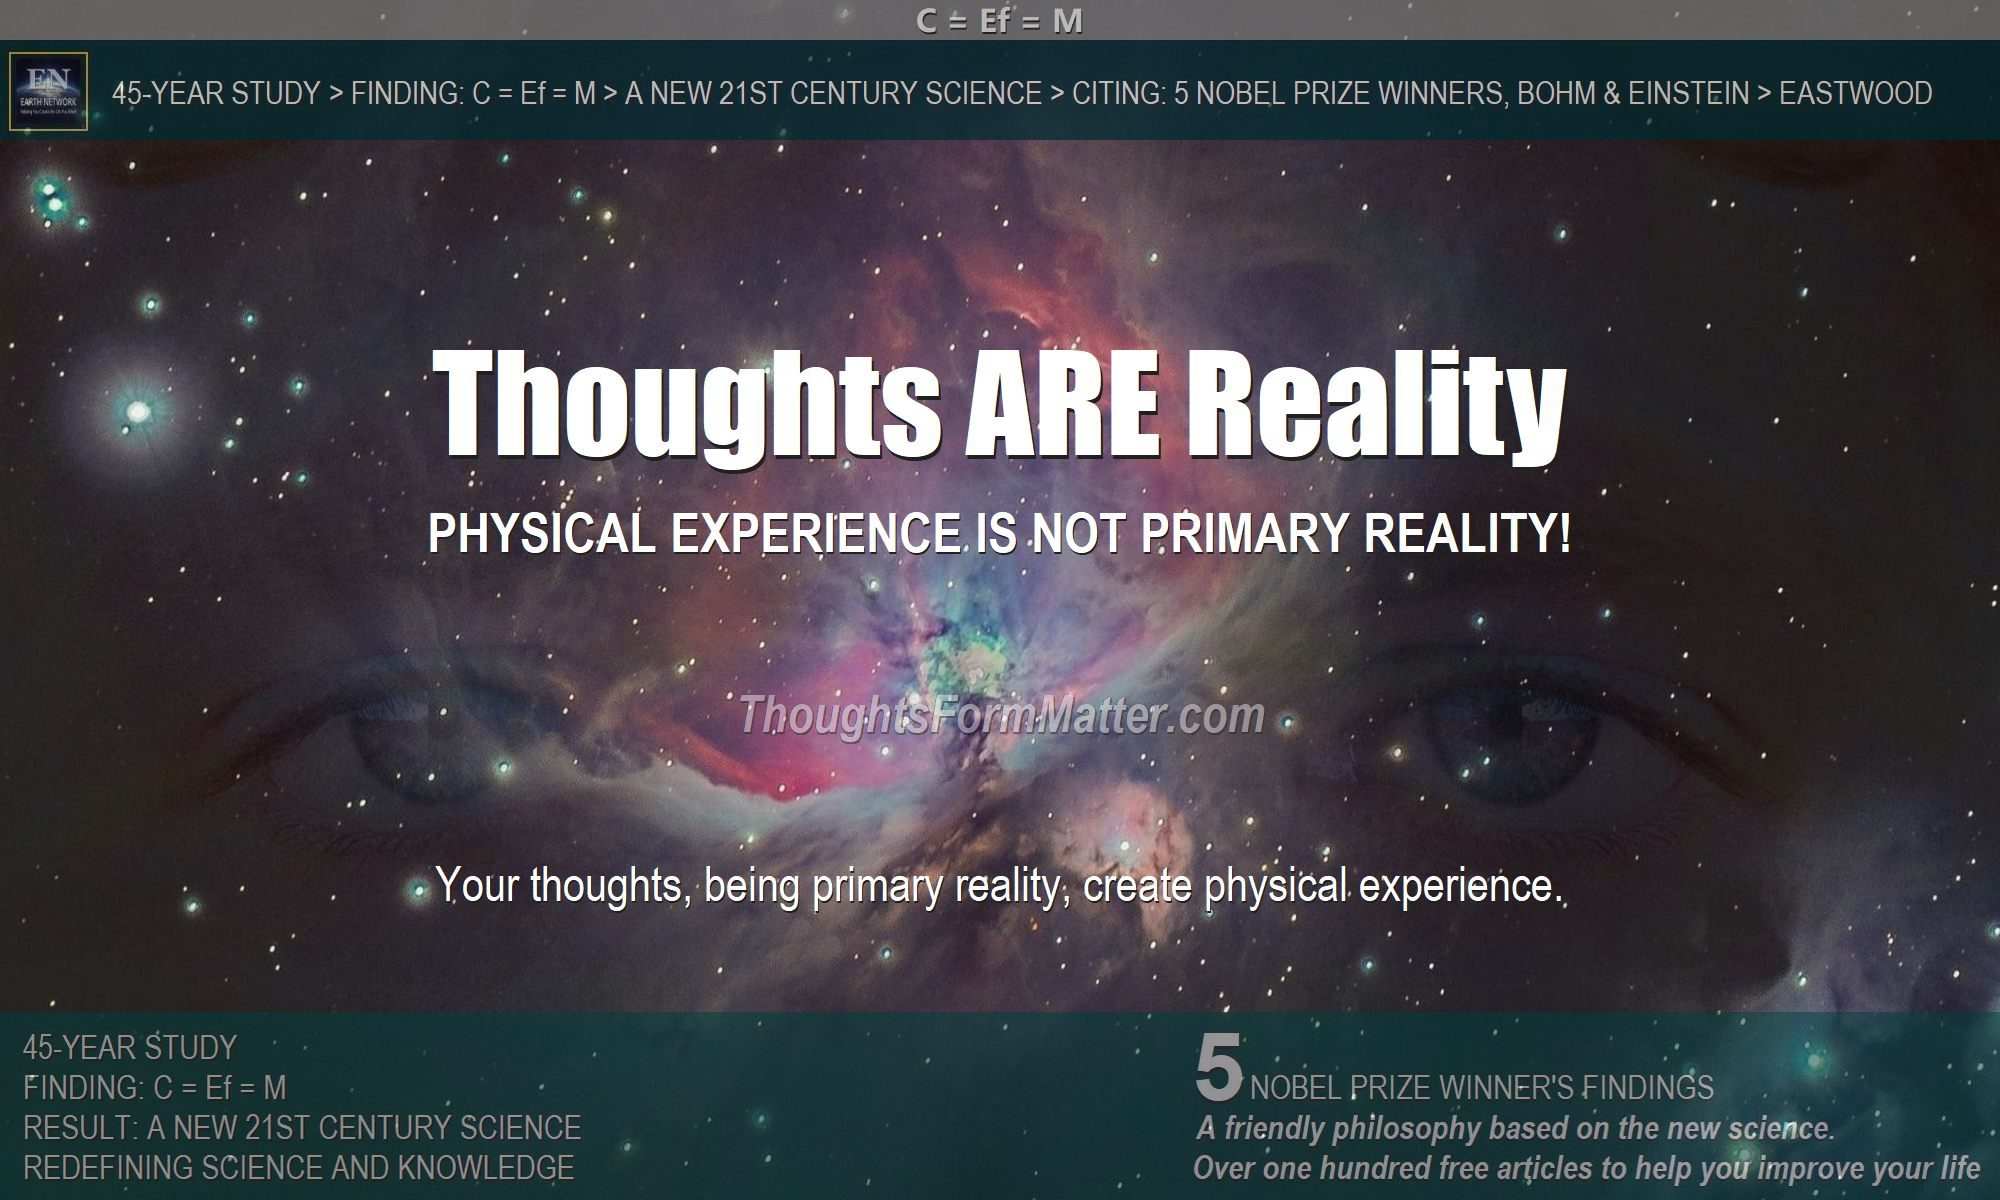 Eyes in galaxy depicts how thoughts and consciousness are within and create the physical universe. Thoughts ARE reality. Consciousness is primary.